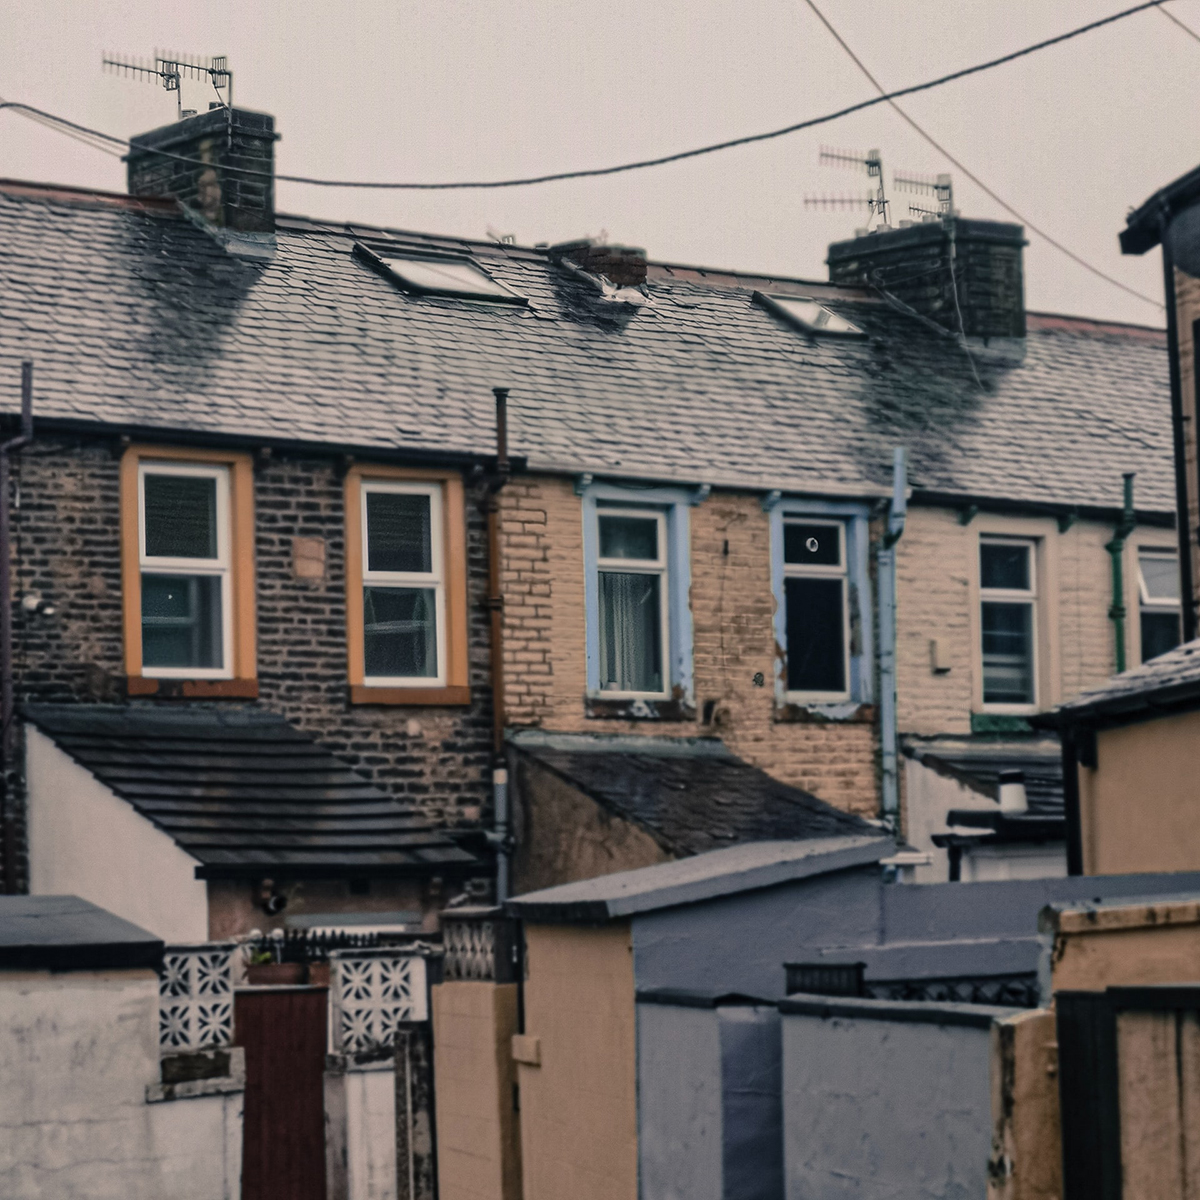 Rows of terrace houses